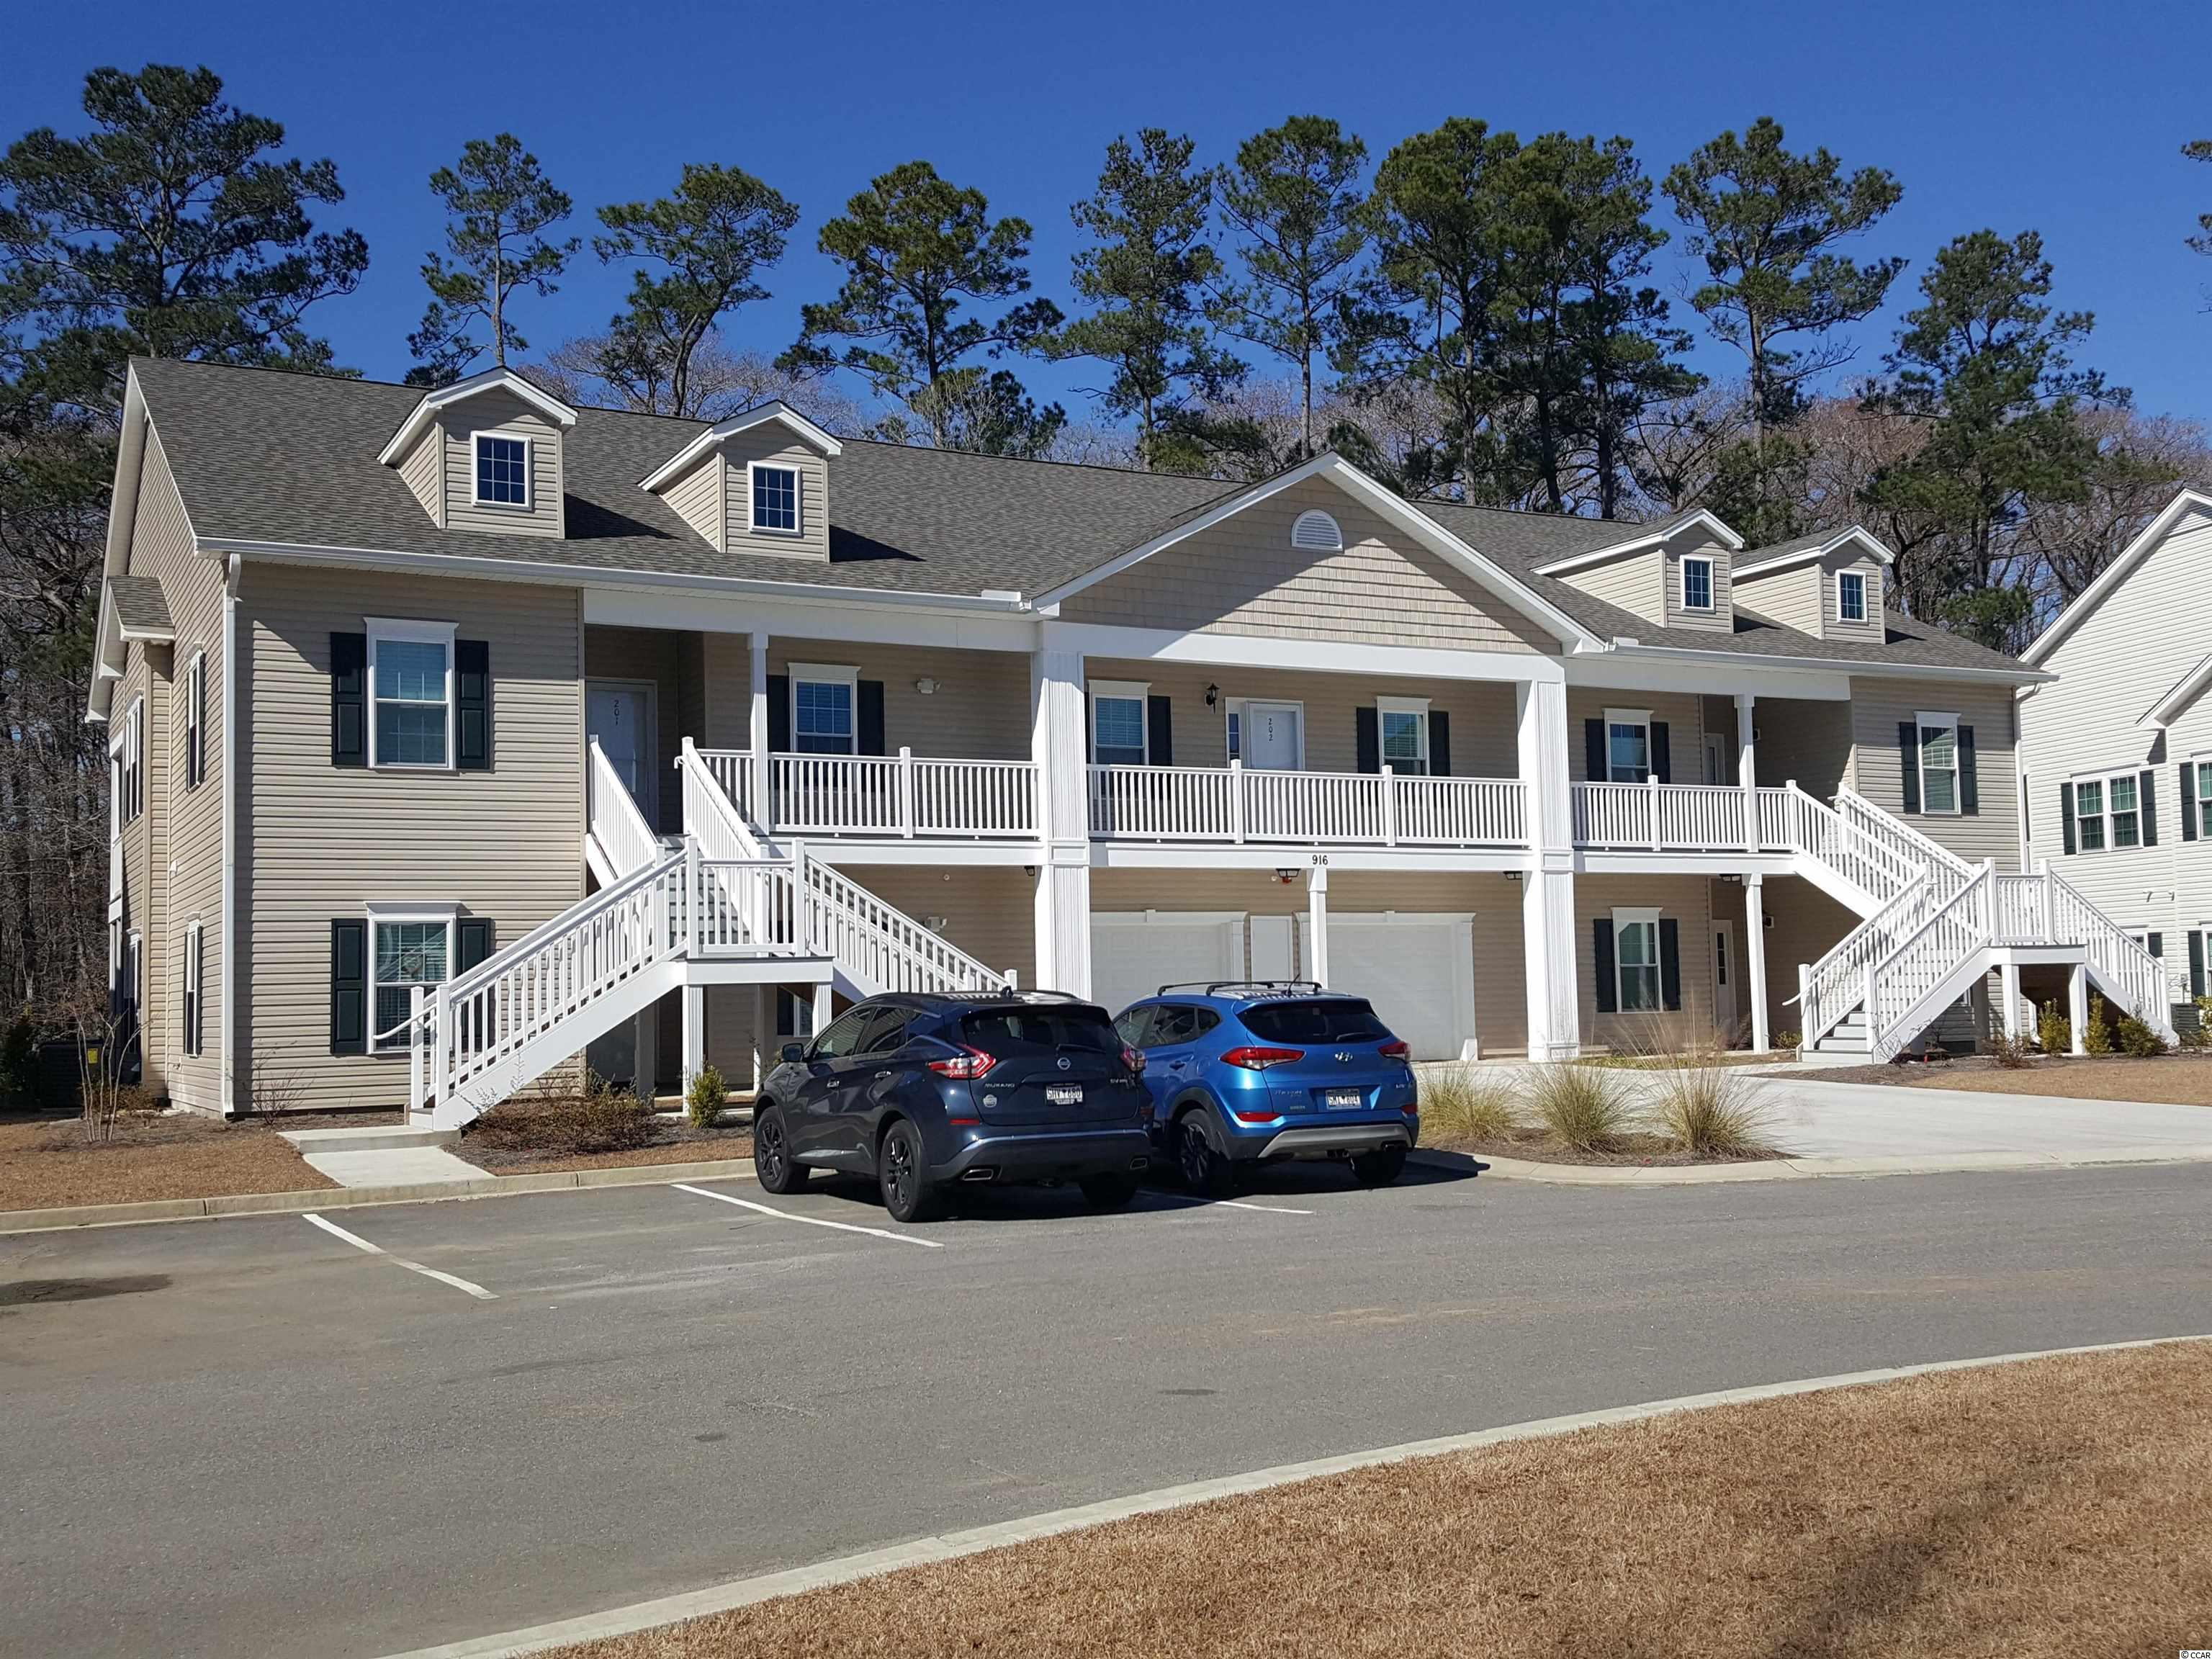 To be built Coming soon April 2021, new Sable unit with an amazing price on our newest Sabal Unit with upgrades,includes upgraded floorsin kitchen and foyer,SS kitchen appl and a 9x10, storage unit that is Heat and Central Air, large walk in shower and screened porch overlooking  wooded area not to mention an unbeatable price on a brand new condo. Standard features included upgraded 42 inch kitchen cabinets, tile, granite counter tops, solar tube in the kitchen, vaulted and tray ceilings, gas furnace, gas hot water heater and gas cook top stove. This is a Wonderful deal on a BRAND NEW condo in Marcliffe West! The floorplans also offers a very open and livable concept.  Great floorplan. Don't wait.  Contact your real estate agent today to show you this unit. This unit is the interior unit on the 2nd floor and does not have a garage. Pictures represent an earlier built unit. Thanks for your interest